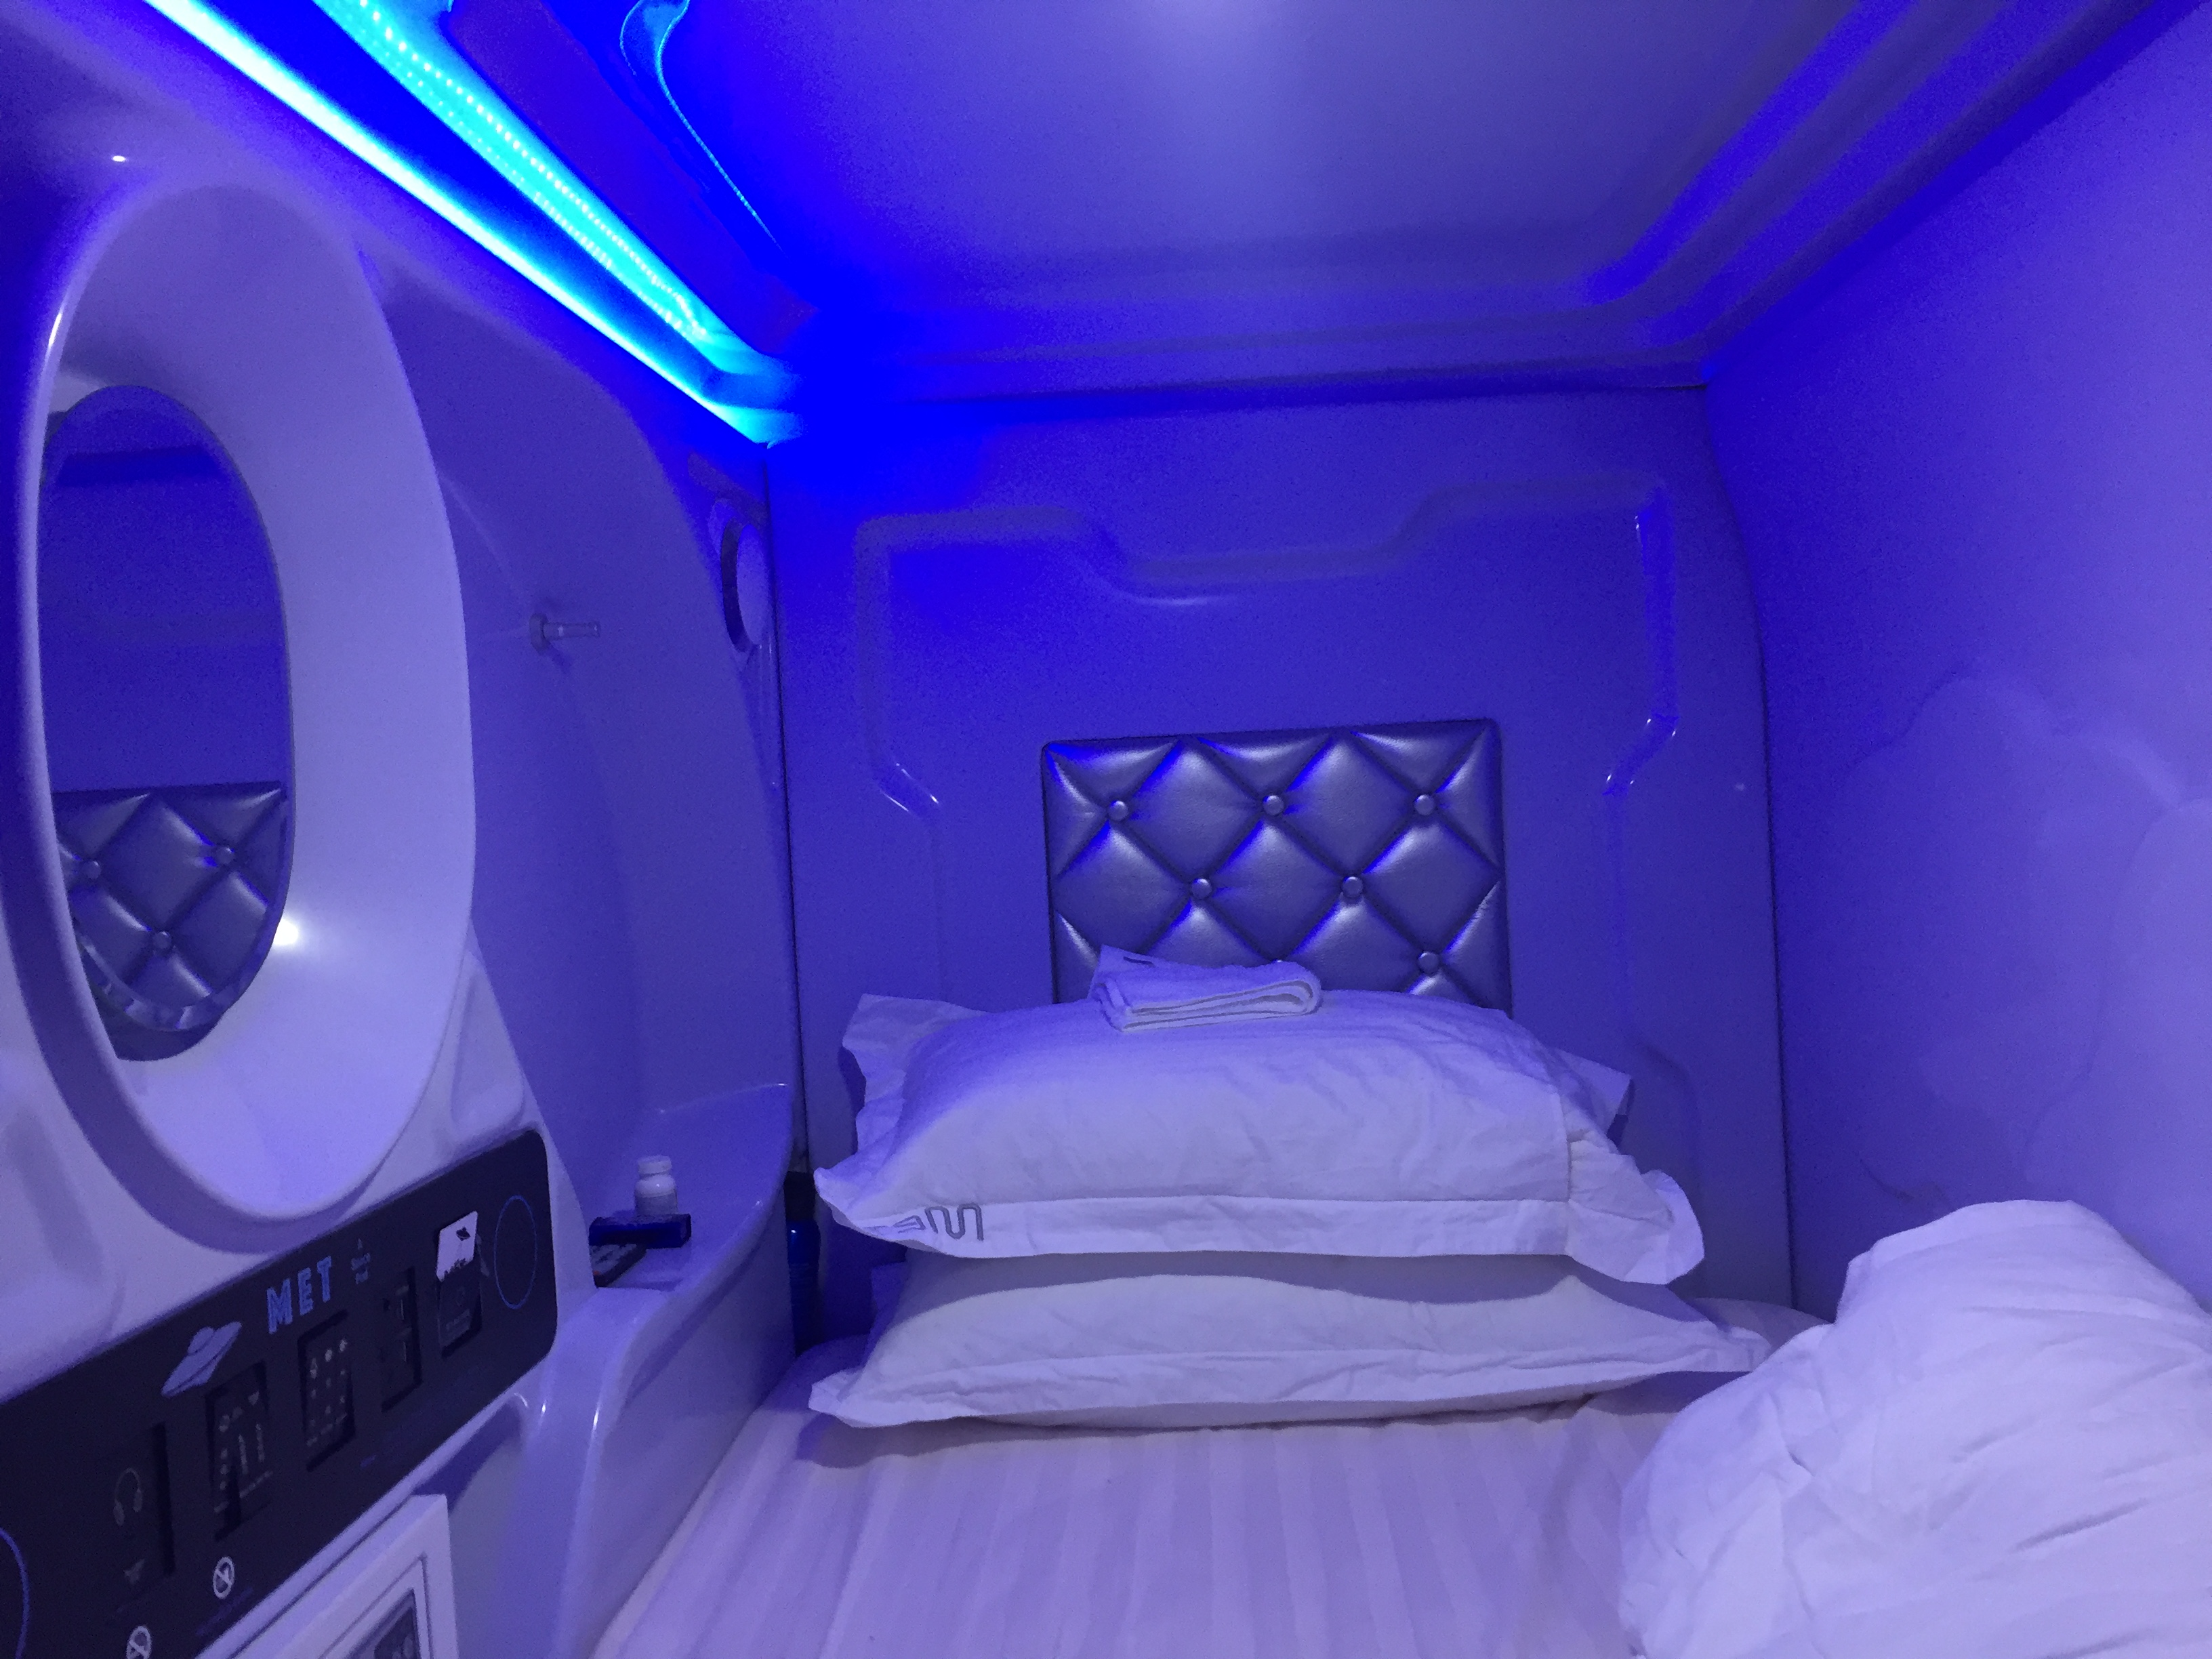 My Weekend in a Space Pod